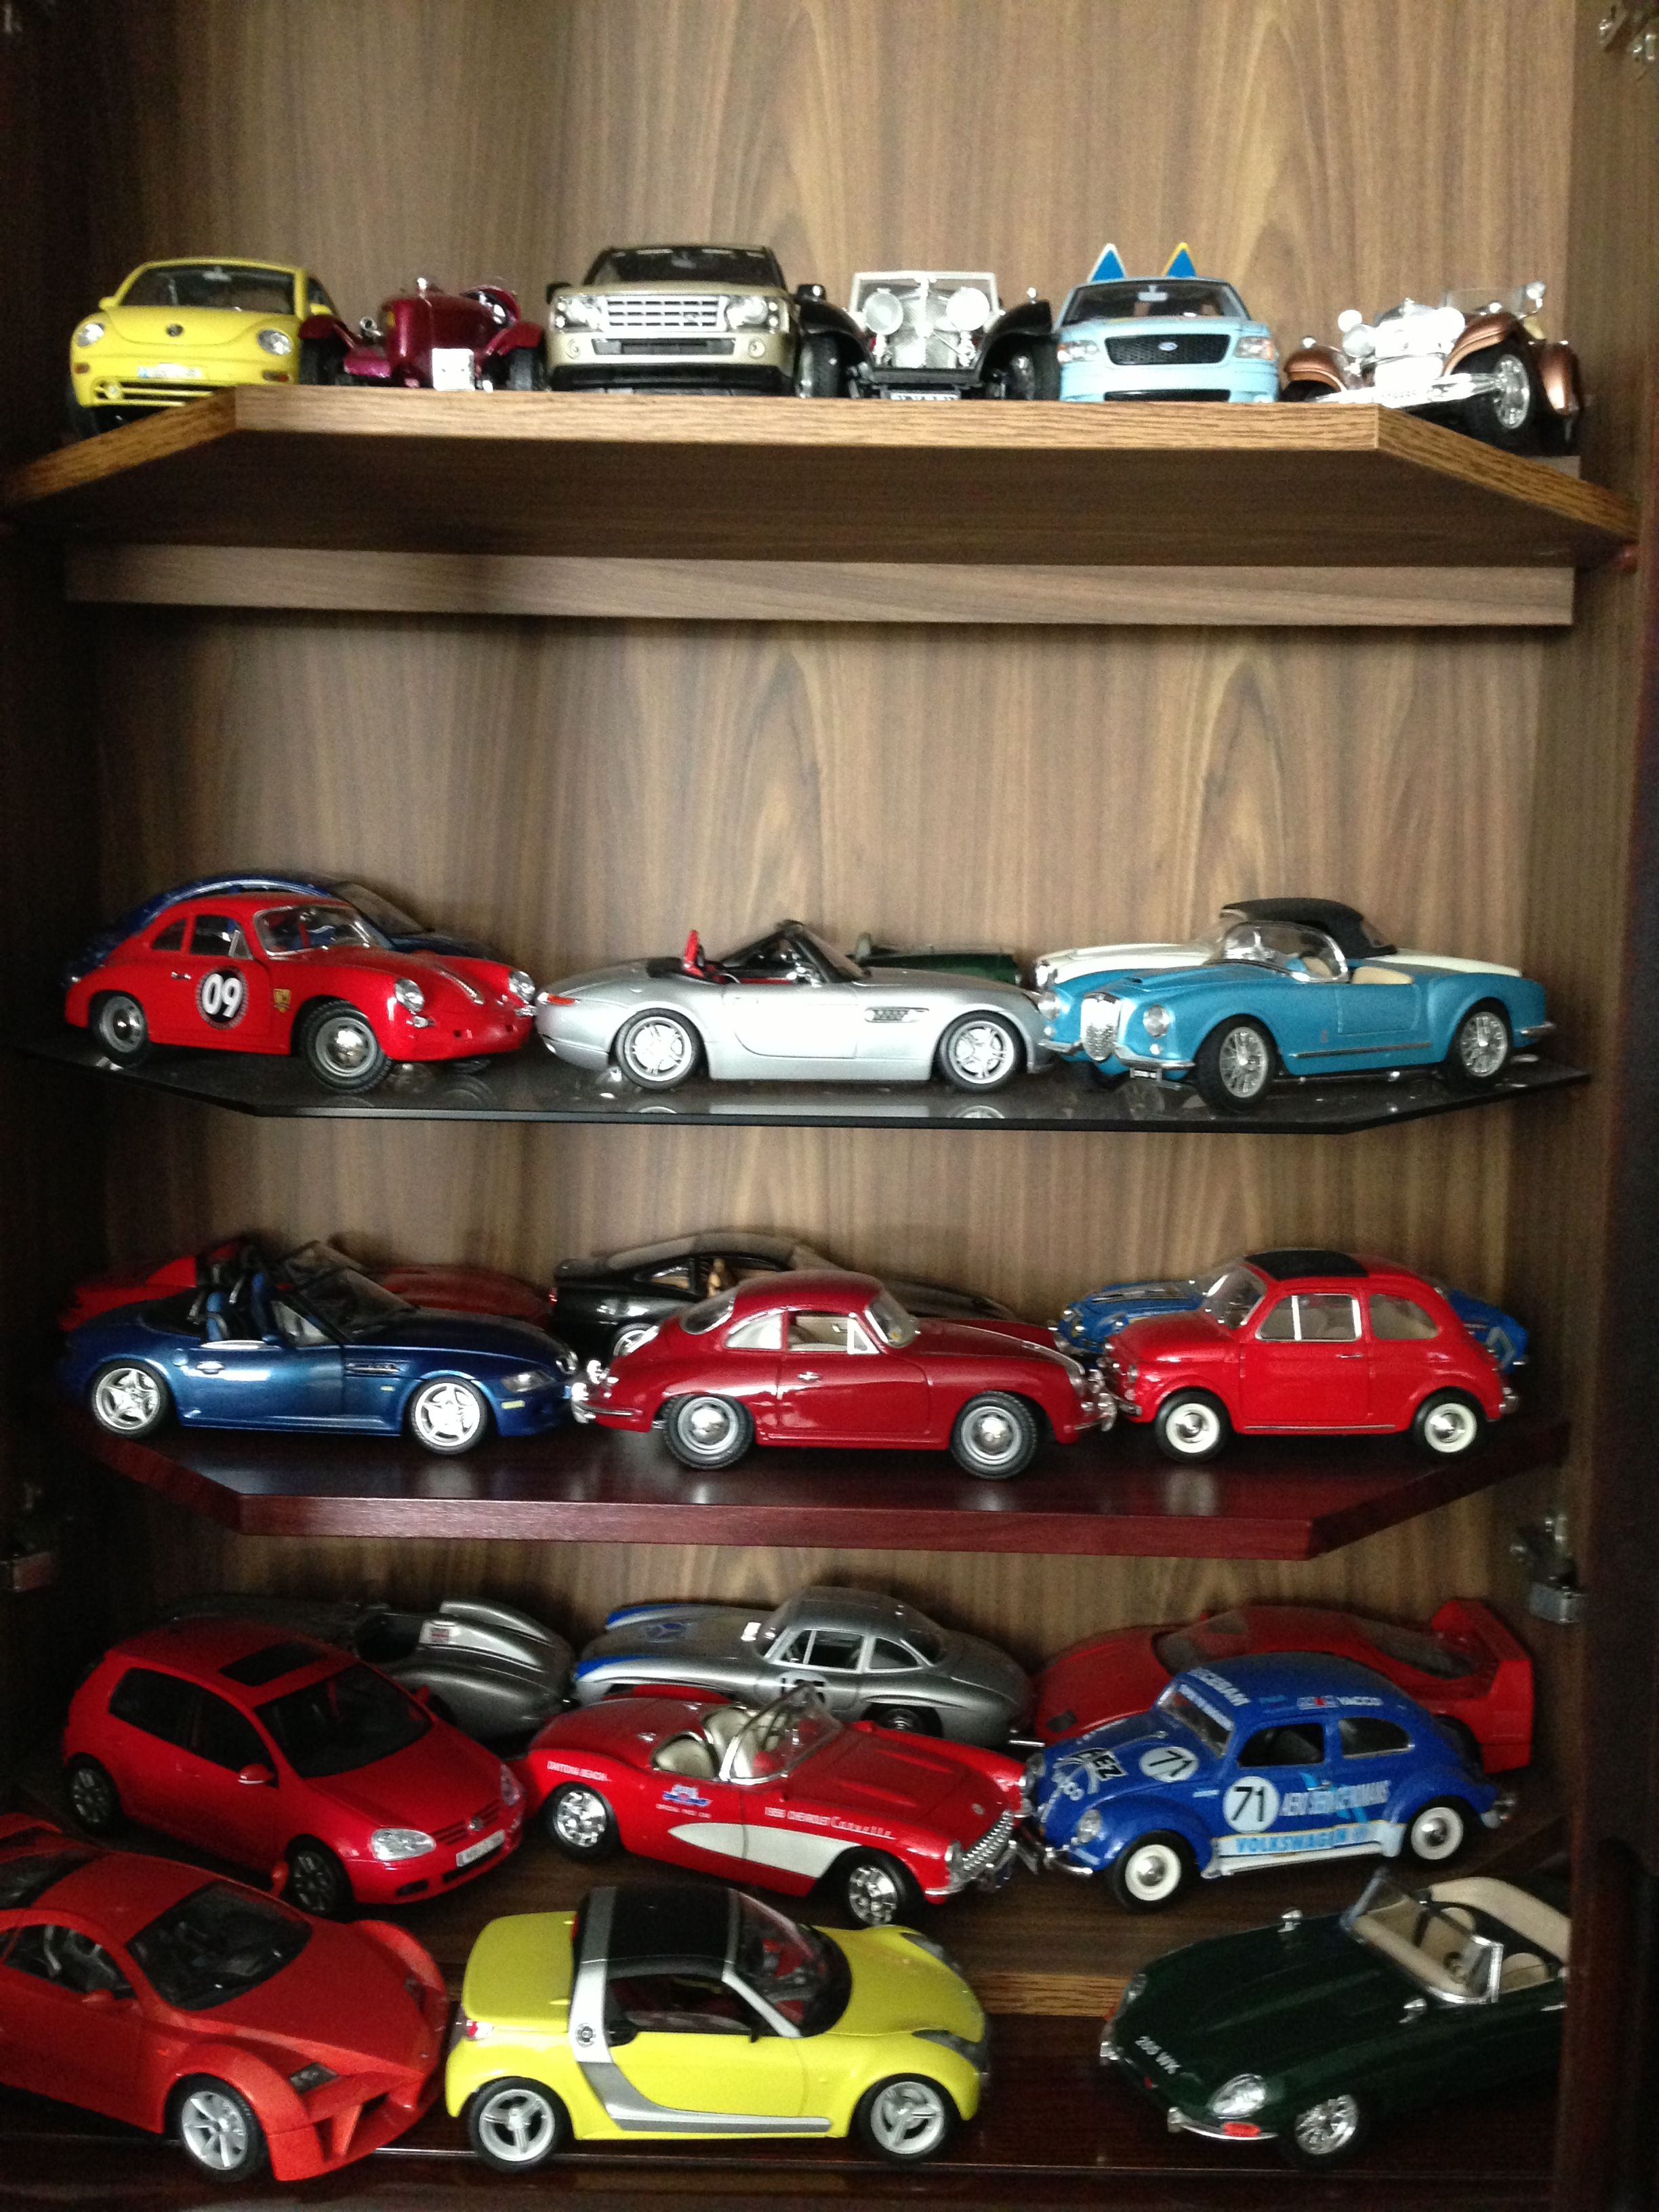 My car kit collection